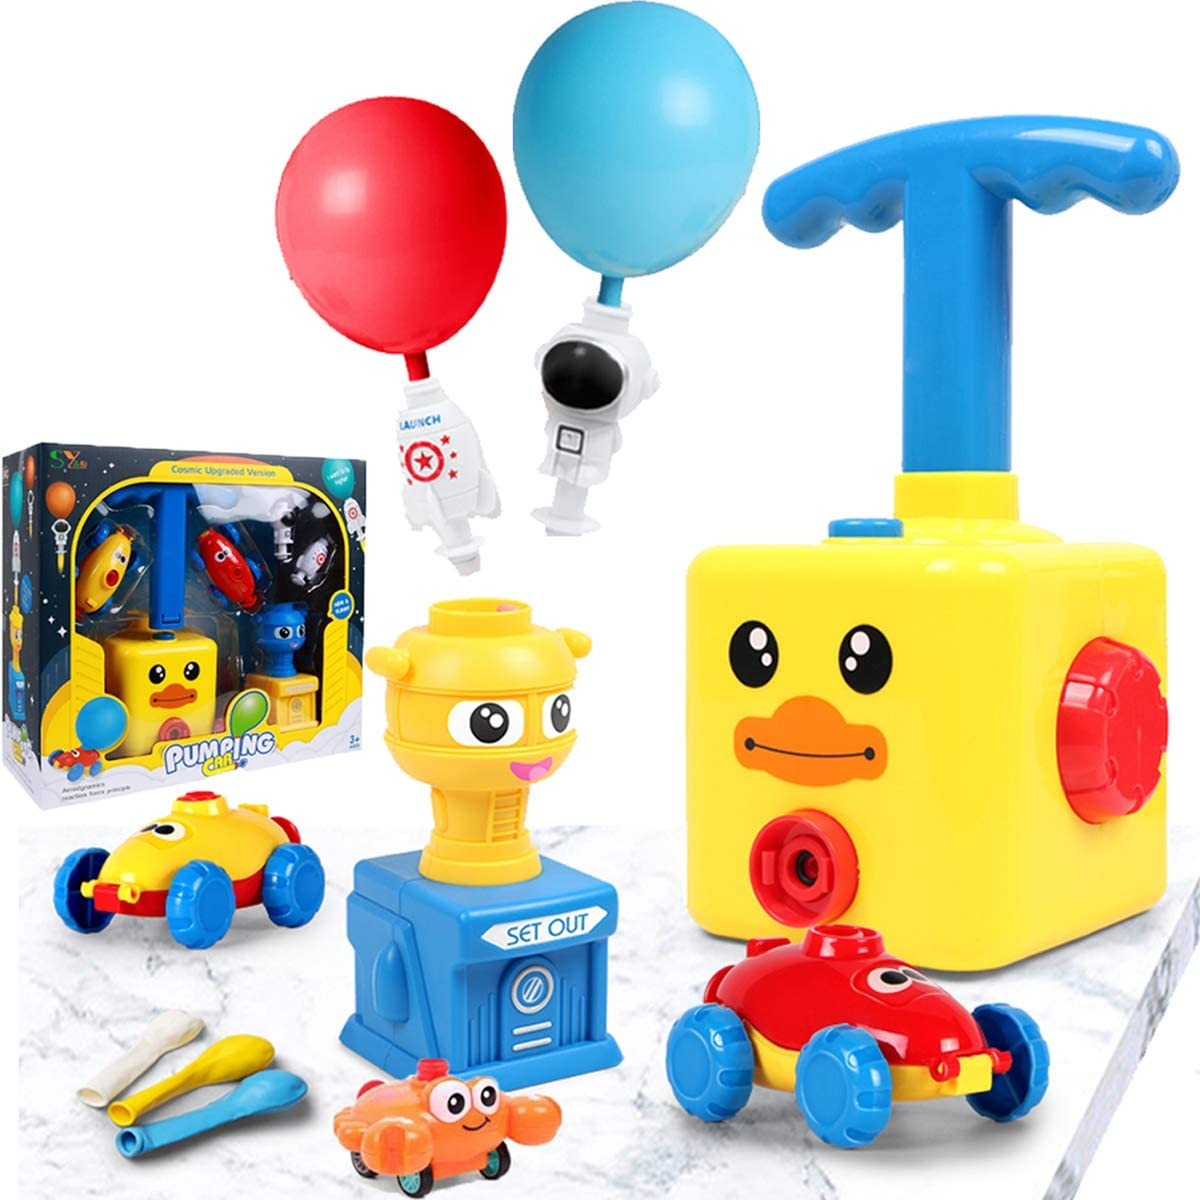 Yellow Angry Bird E-gle Balloon Powered Car with Launch Pad Toy for Kids Air Inertial Balloon Pump Cars Racer Creative Vehicle Toy for Children No Batteries Needed Best Toys Gift for Kids